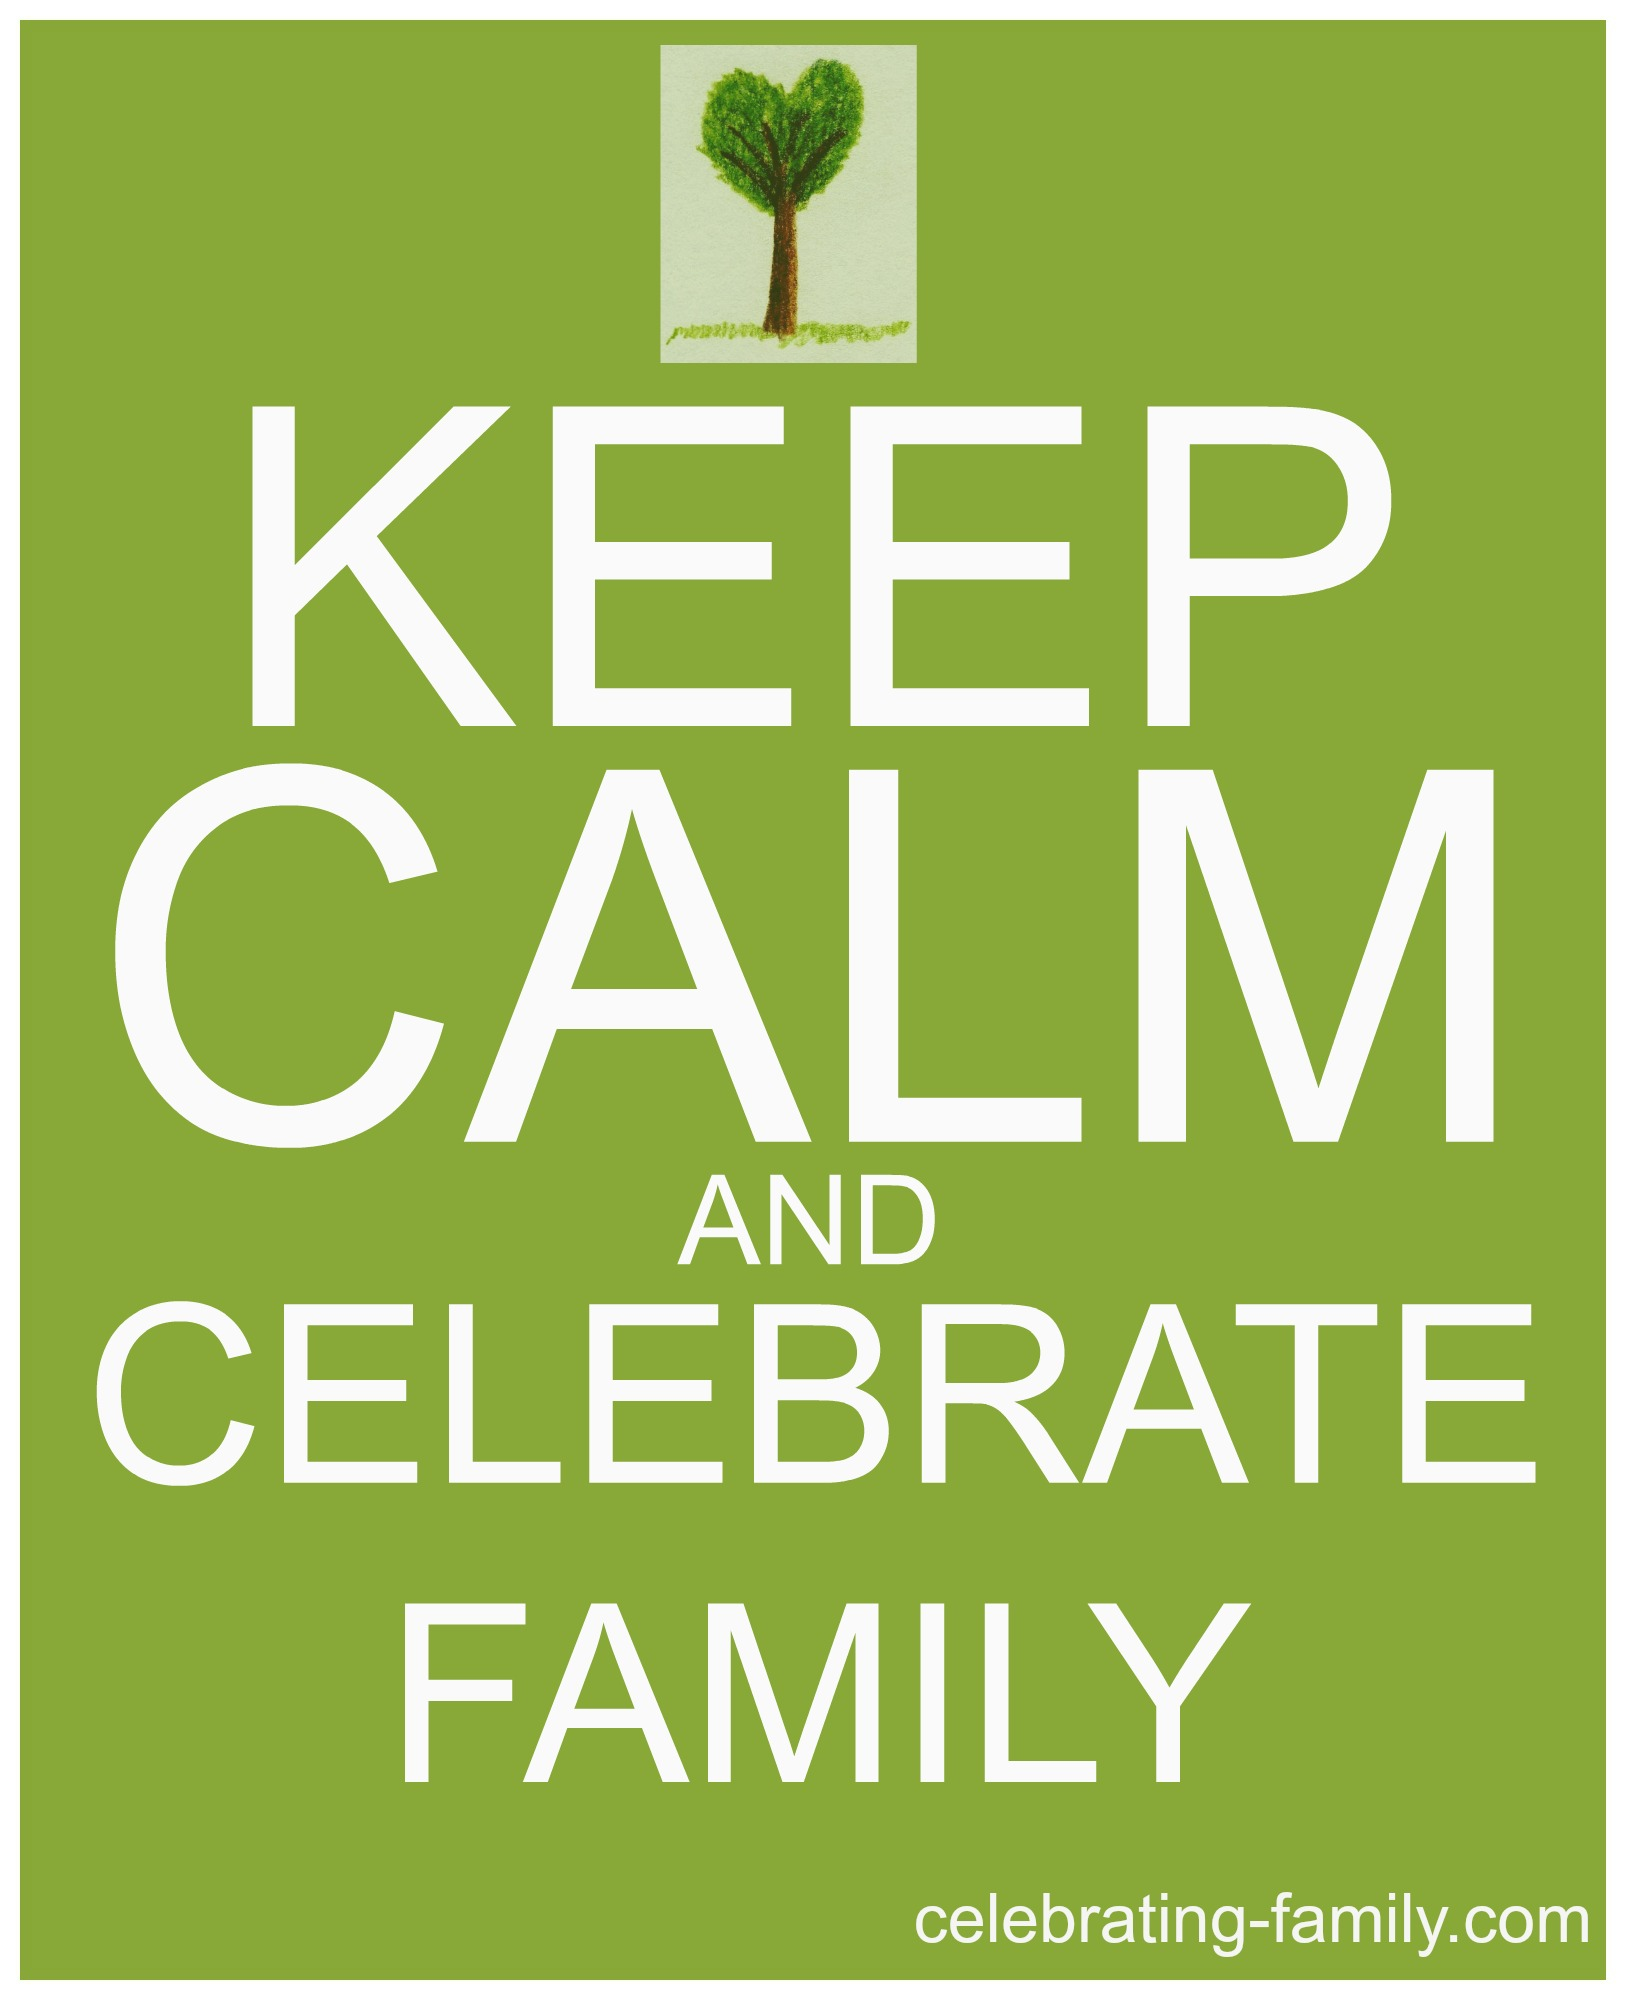 Keep Calm - Celebrating Family